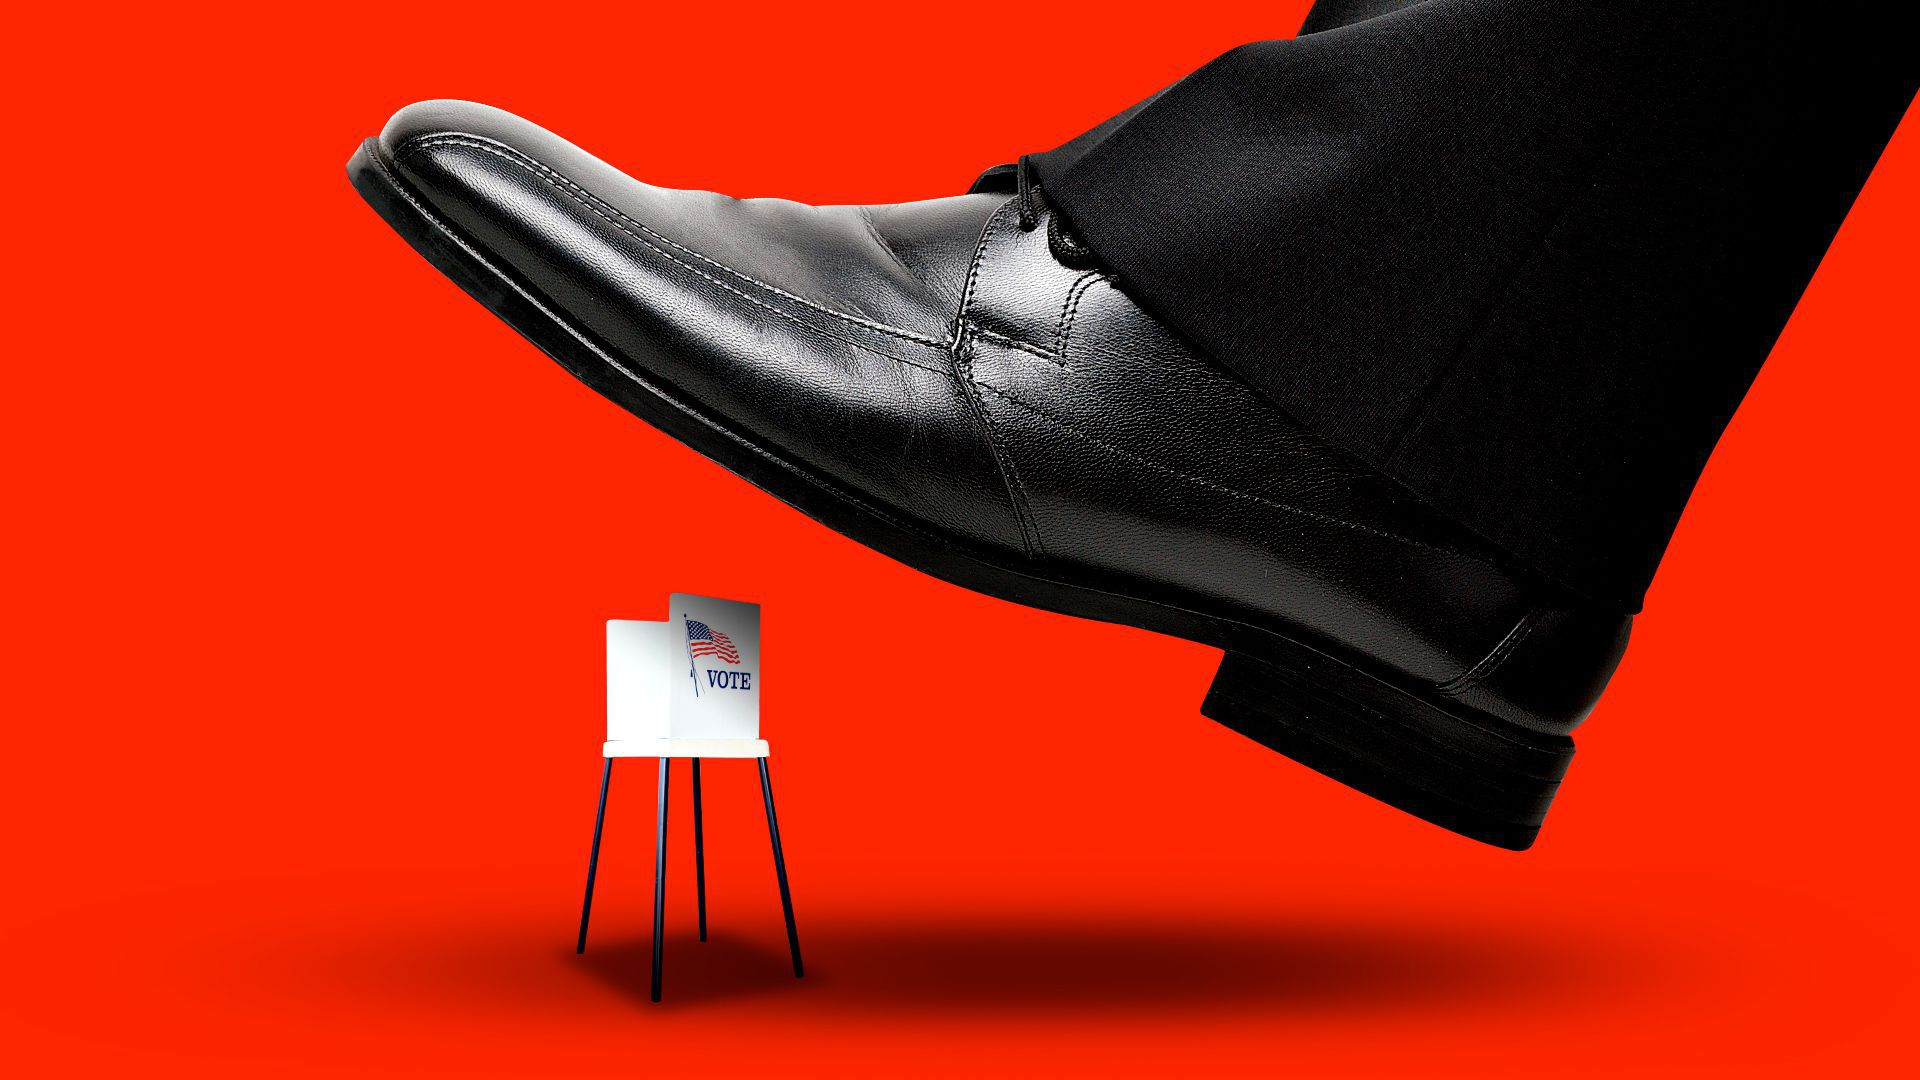 Illustration of a large shoe about to step on a tiny voting booth.